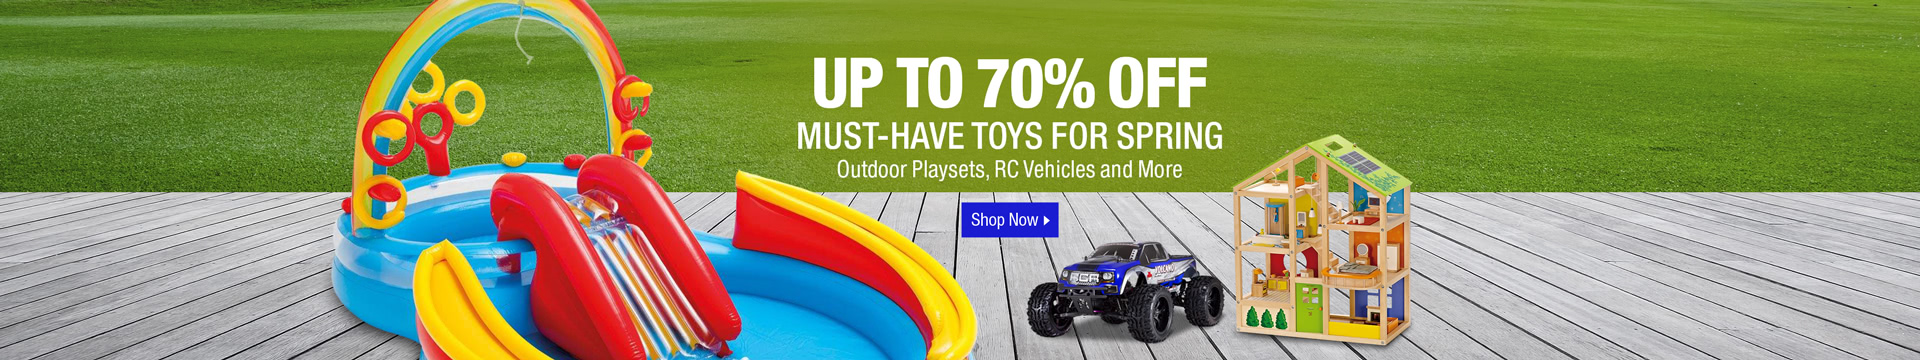 Up to 70% off must-have toys for spring